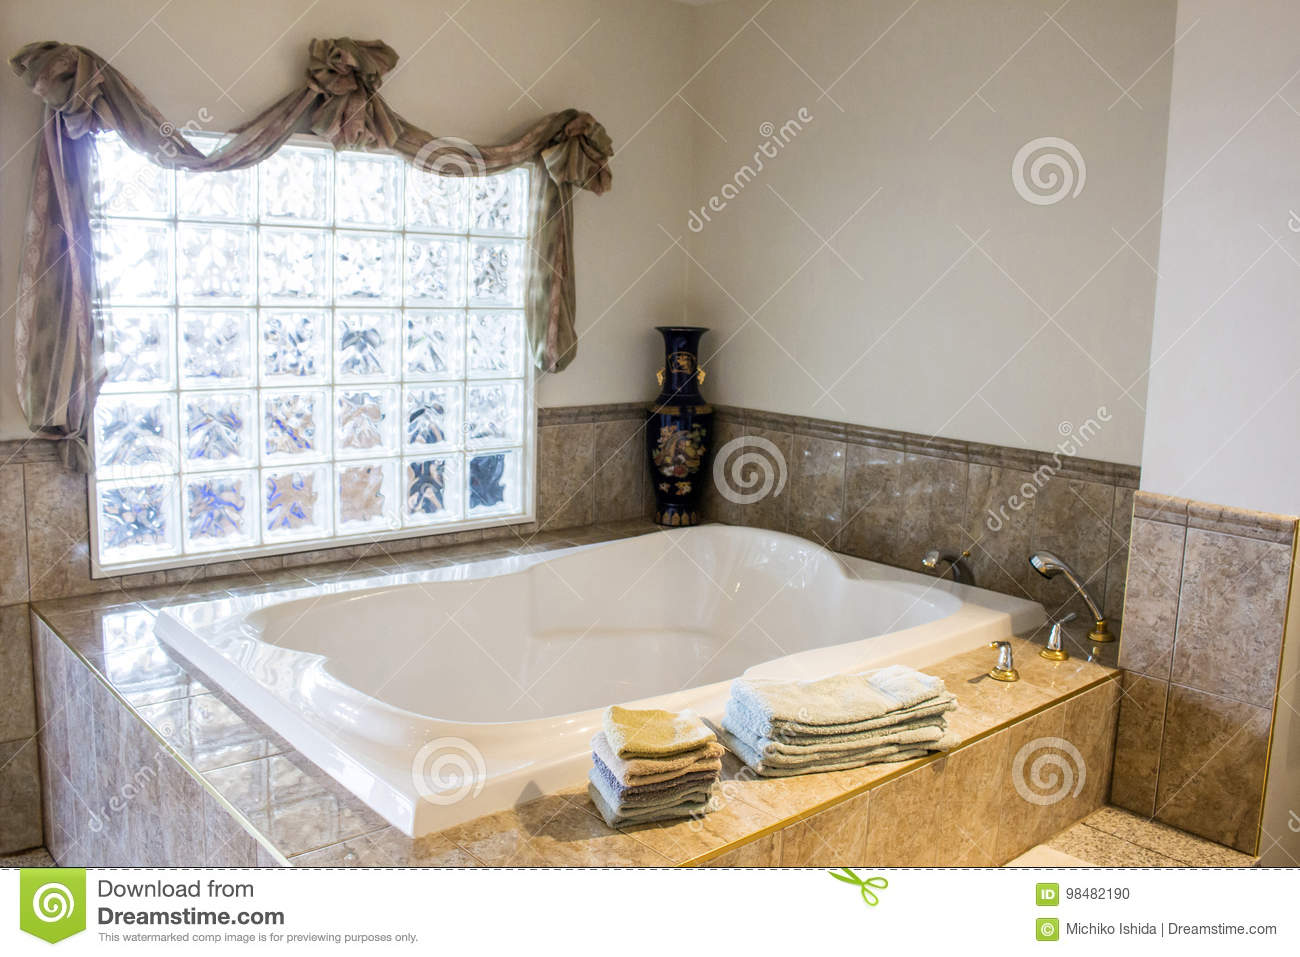 salle de bains luxueuse de baignoire photo stock image du m tal propre 98482190. Black Bedroom Furniture Sets. Home Design Ideas